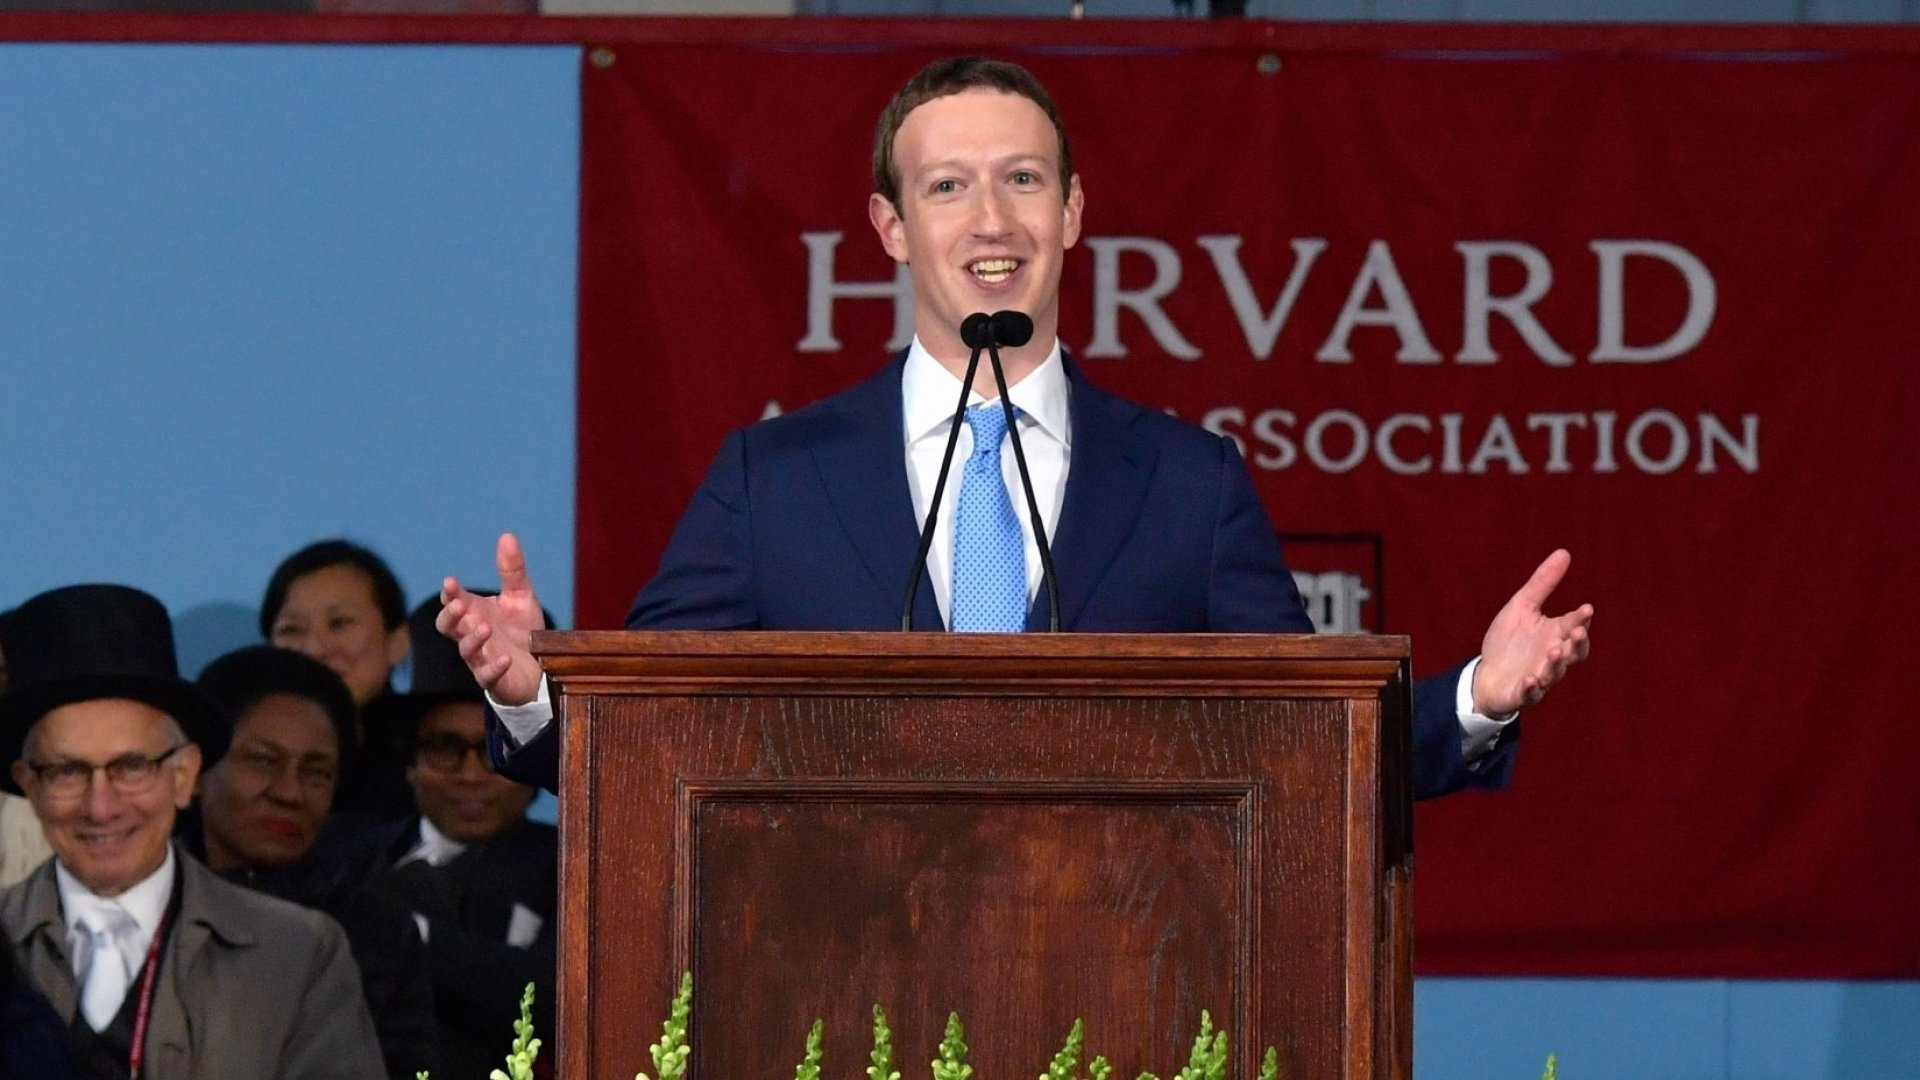 Mark Zuckerberg Delivers His Secret for Happiness at the Harvard Commencement